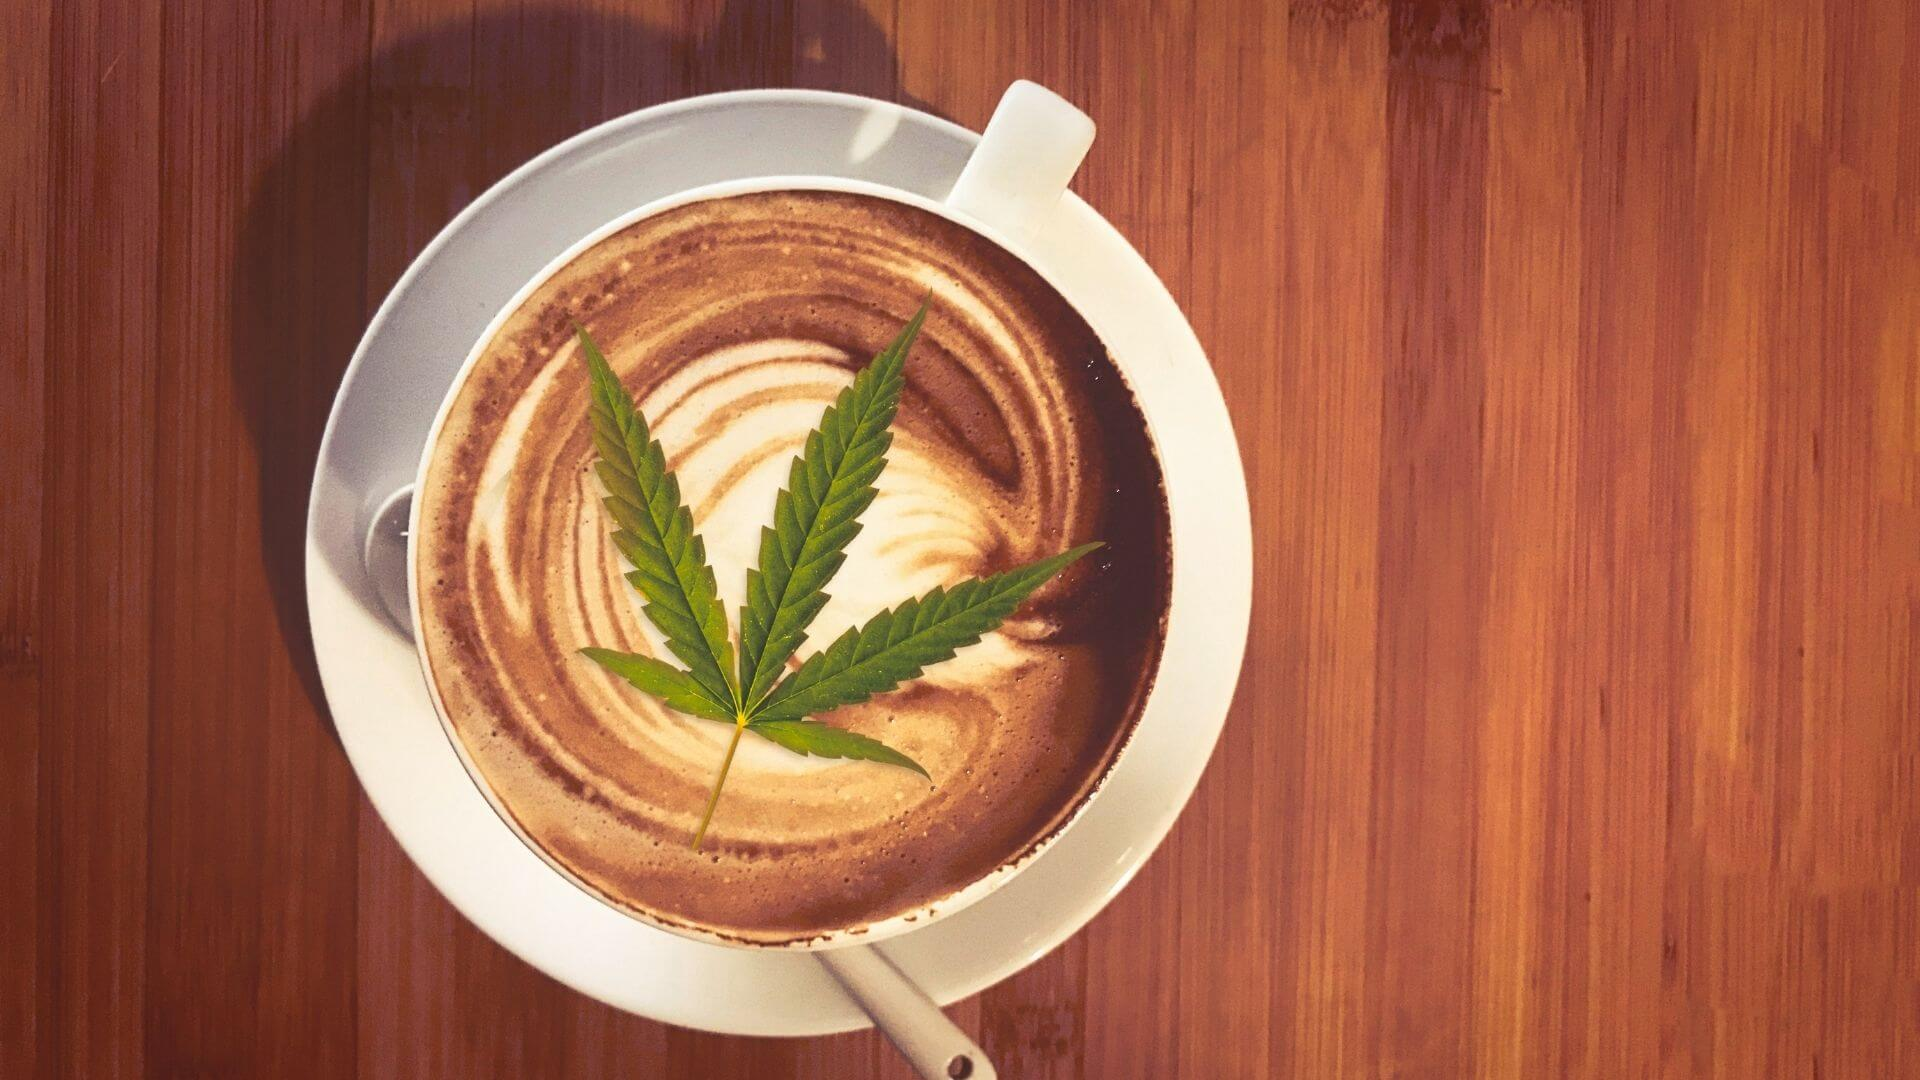 CBD-infused coffee with a hemp leaf on the top of the cup of coffee